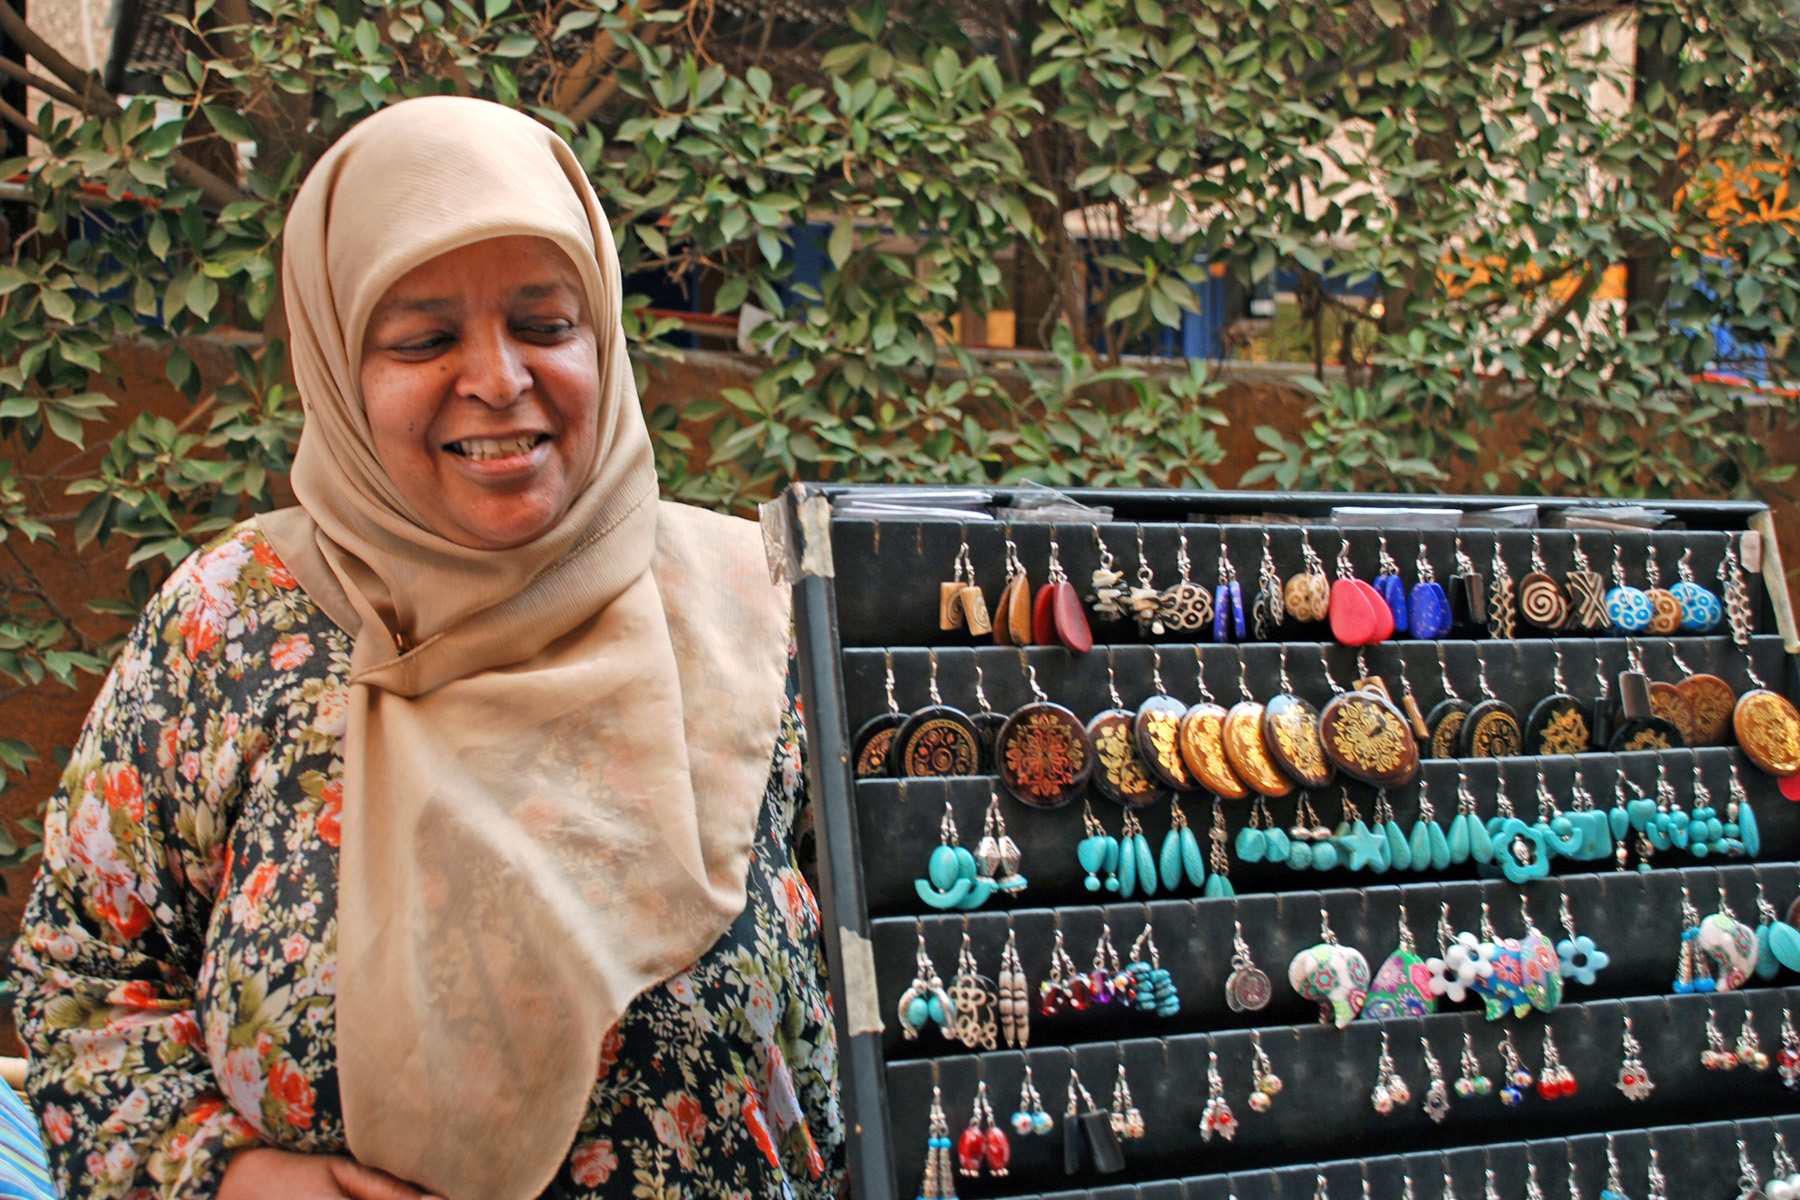 Fatma Soleman, the Eritrean woman in Cairo